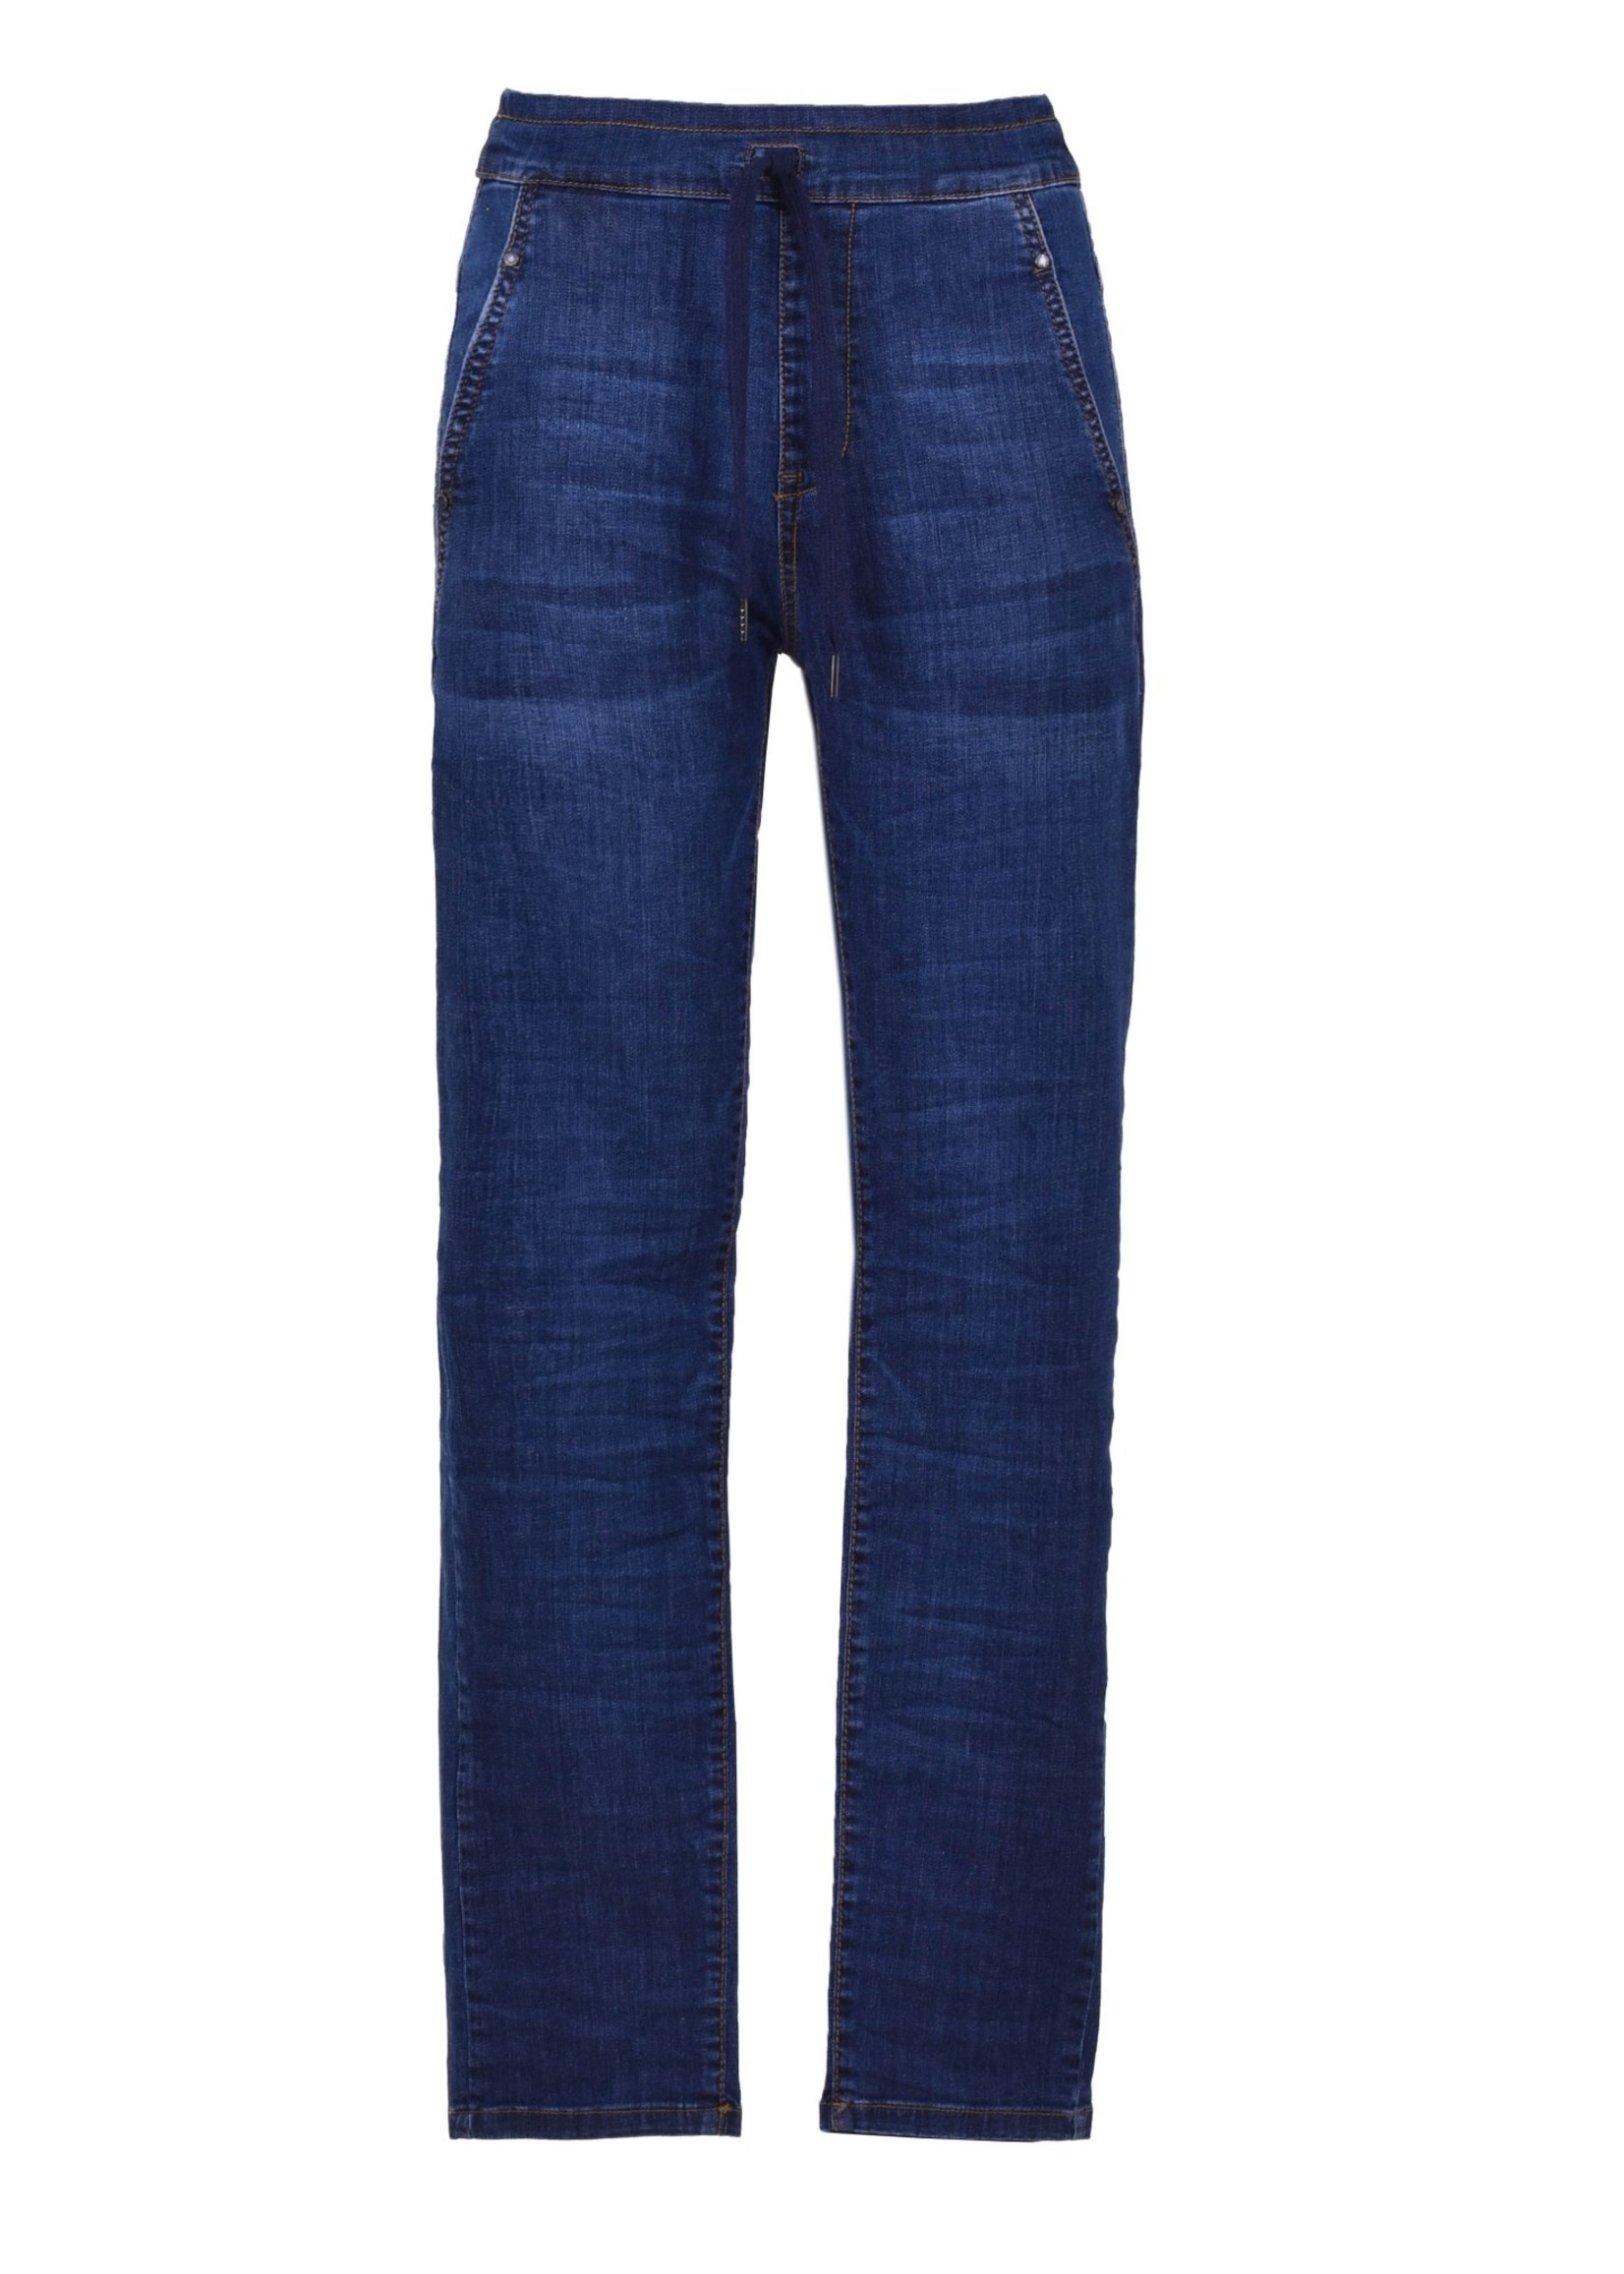 ALEMBIKA Sp312d denim pant